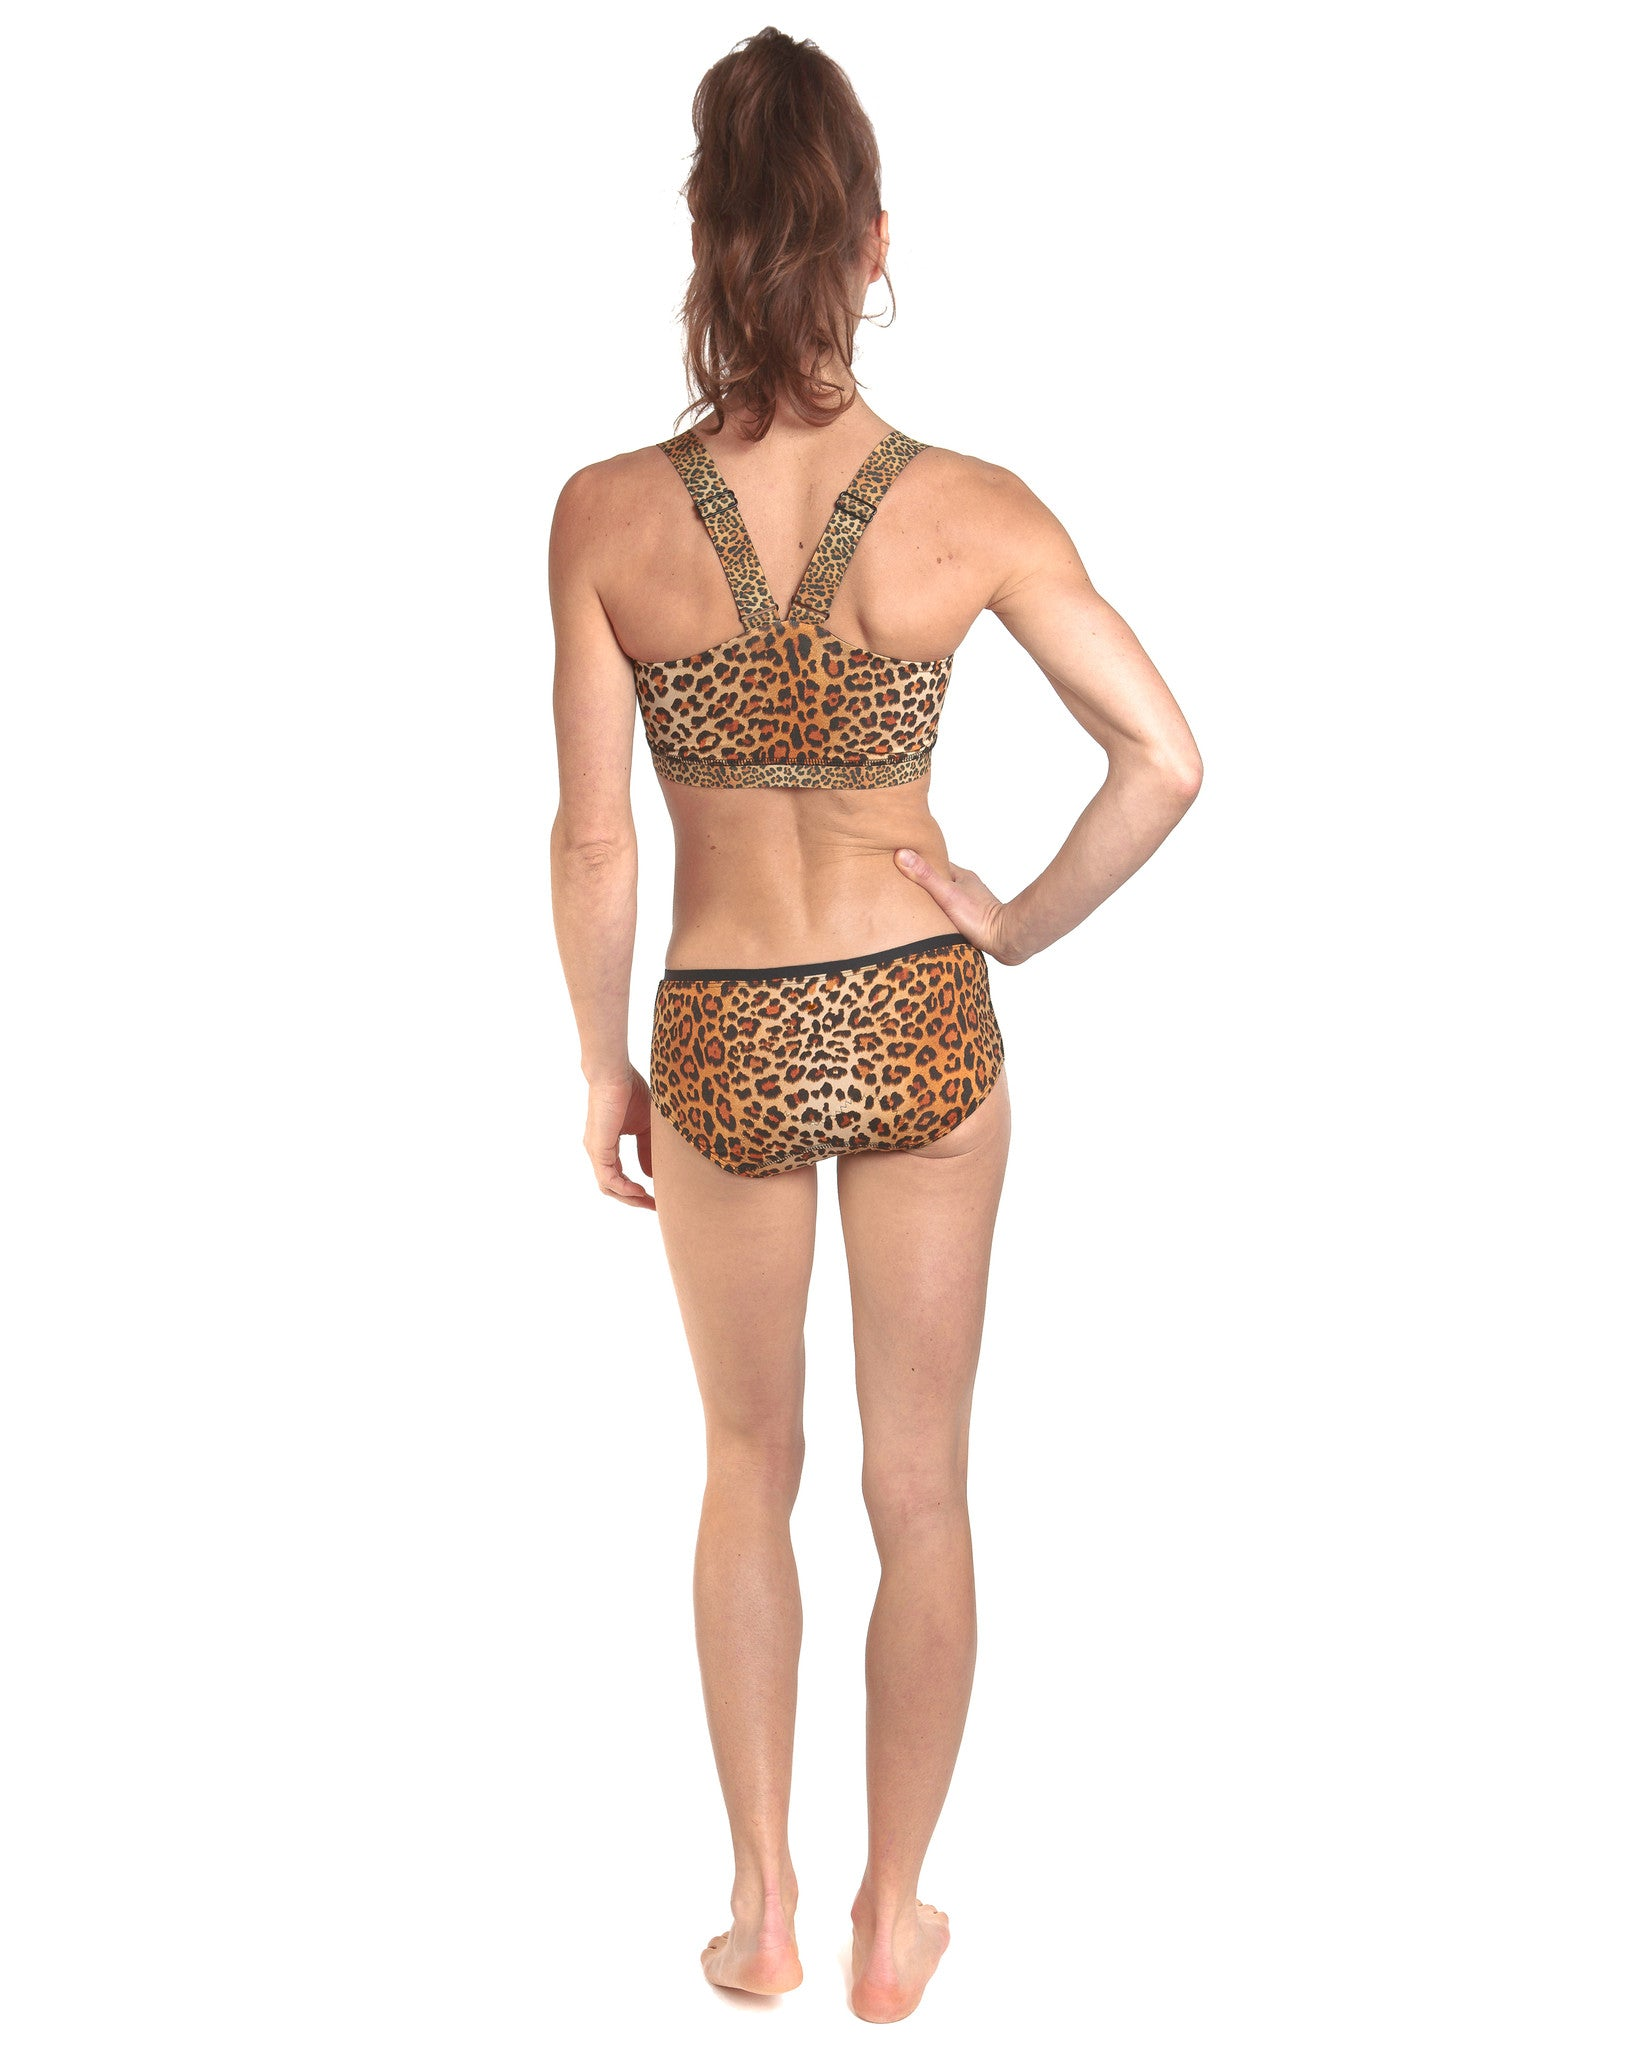 LPRD Leopard Cycling Hipster Undies | Back View